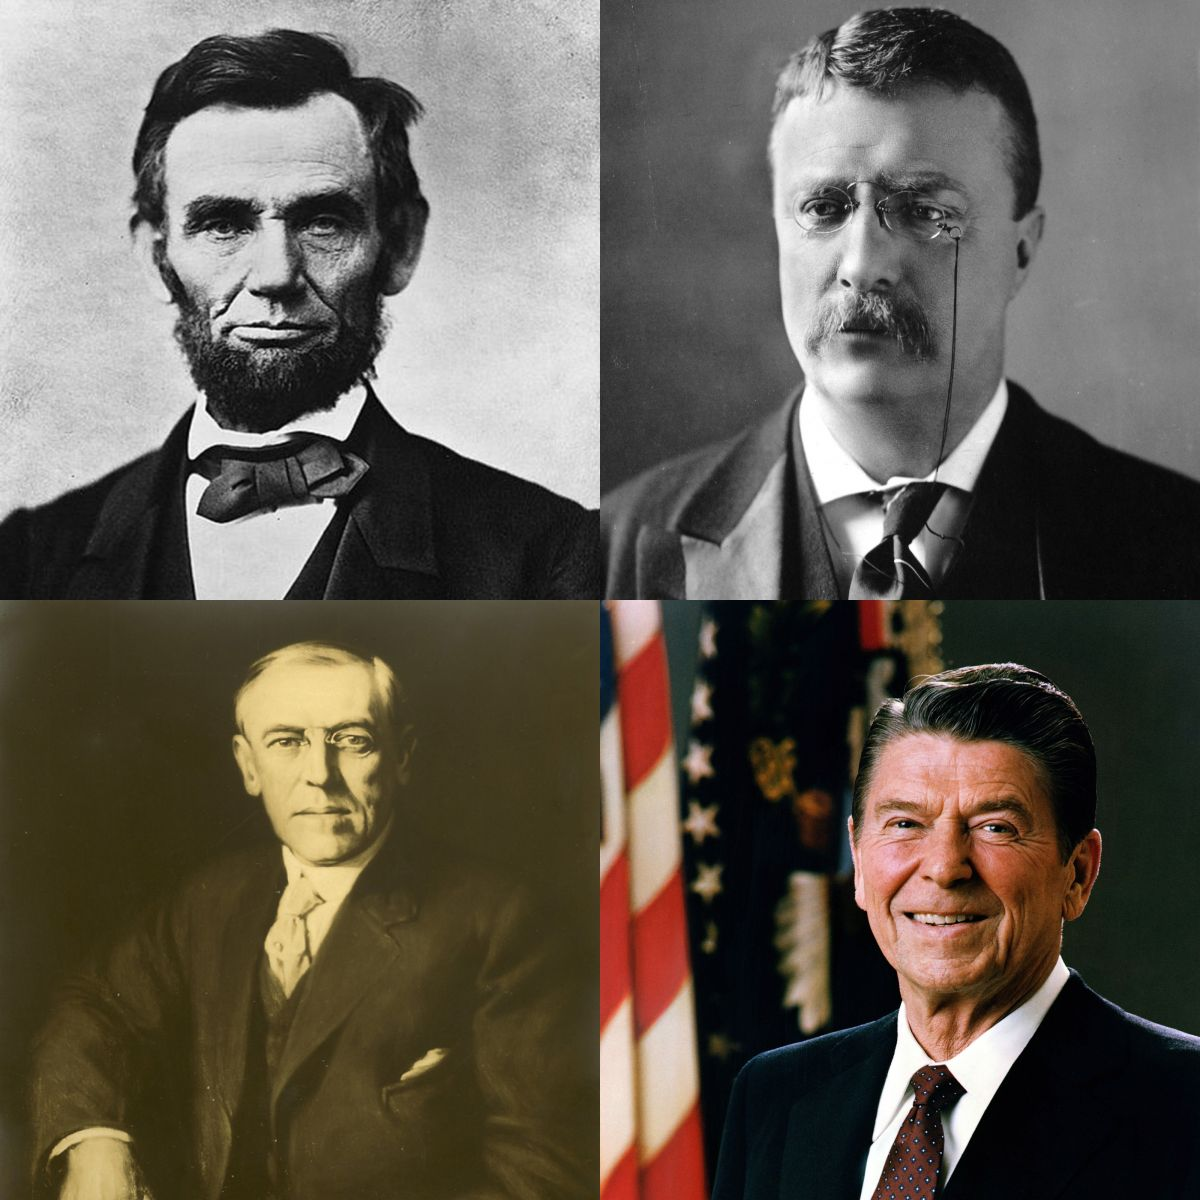 Presidents collage